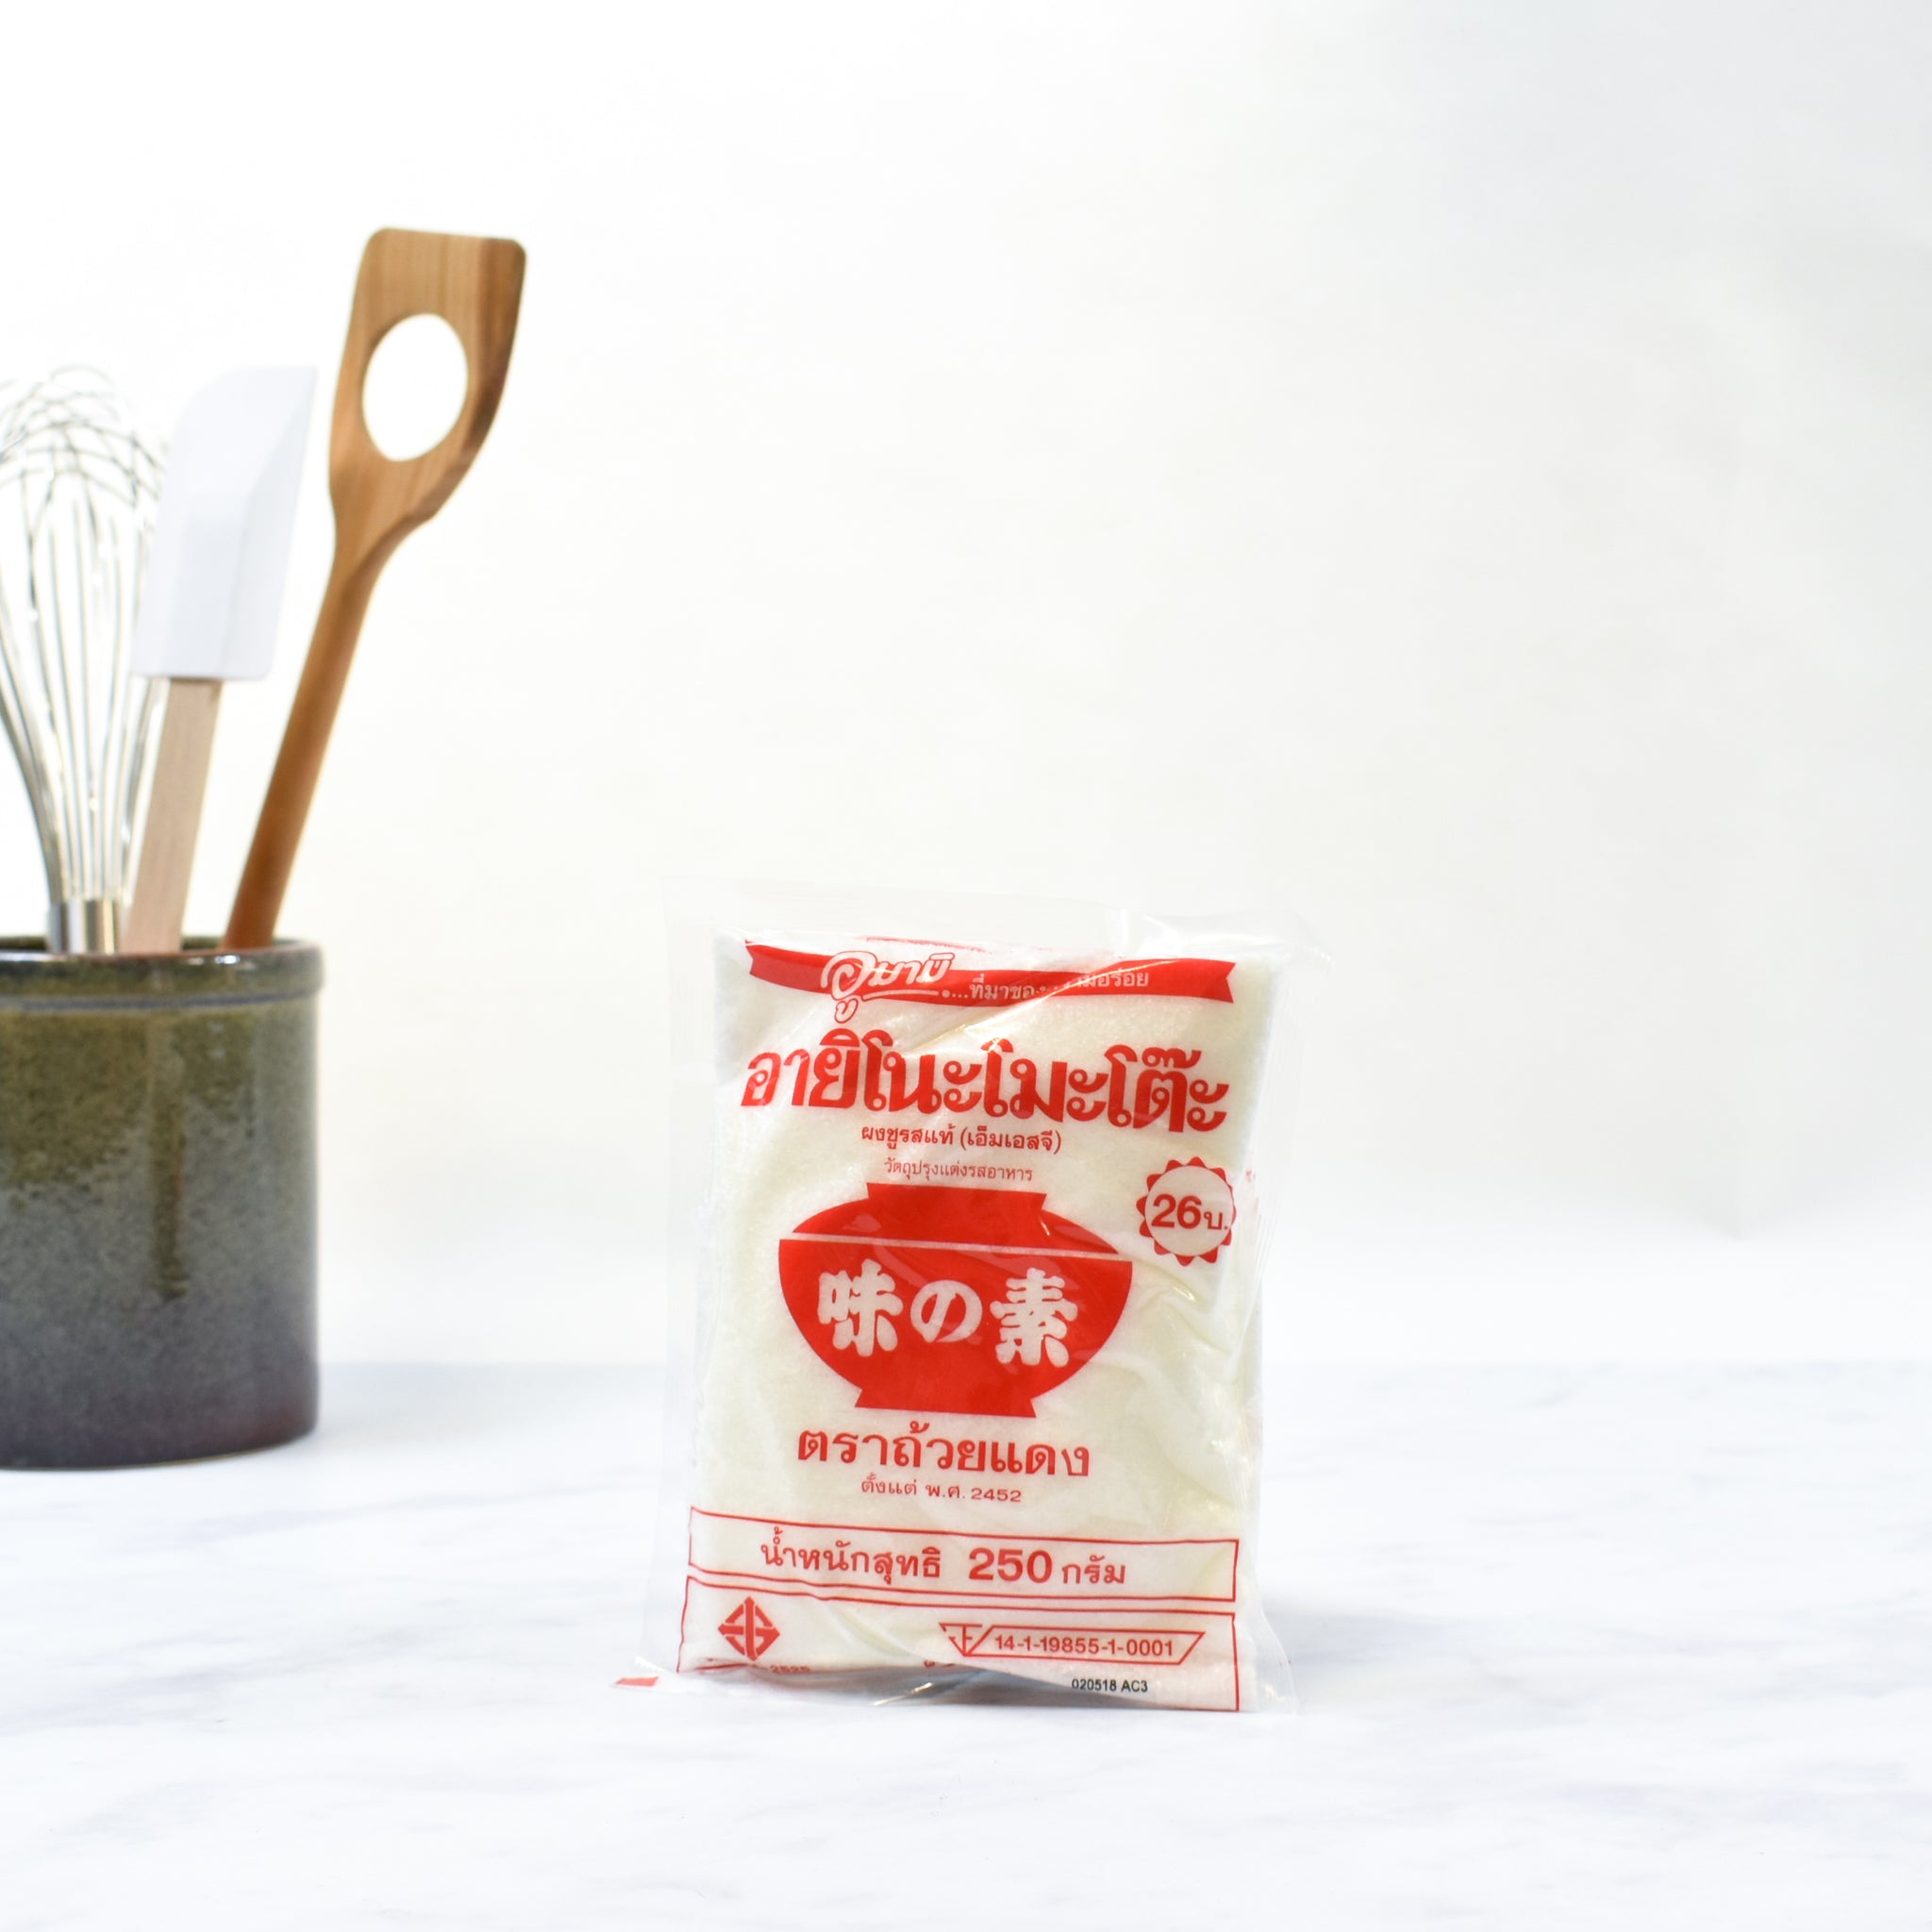 Ajinomoto Umami Powder MSG 250g Ingredients Seasonings Japanese Food Lifestyle Packaging Shot